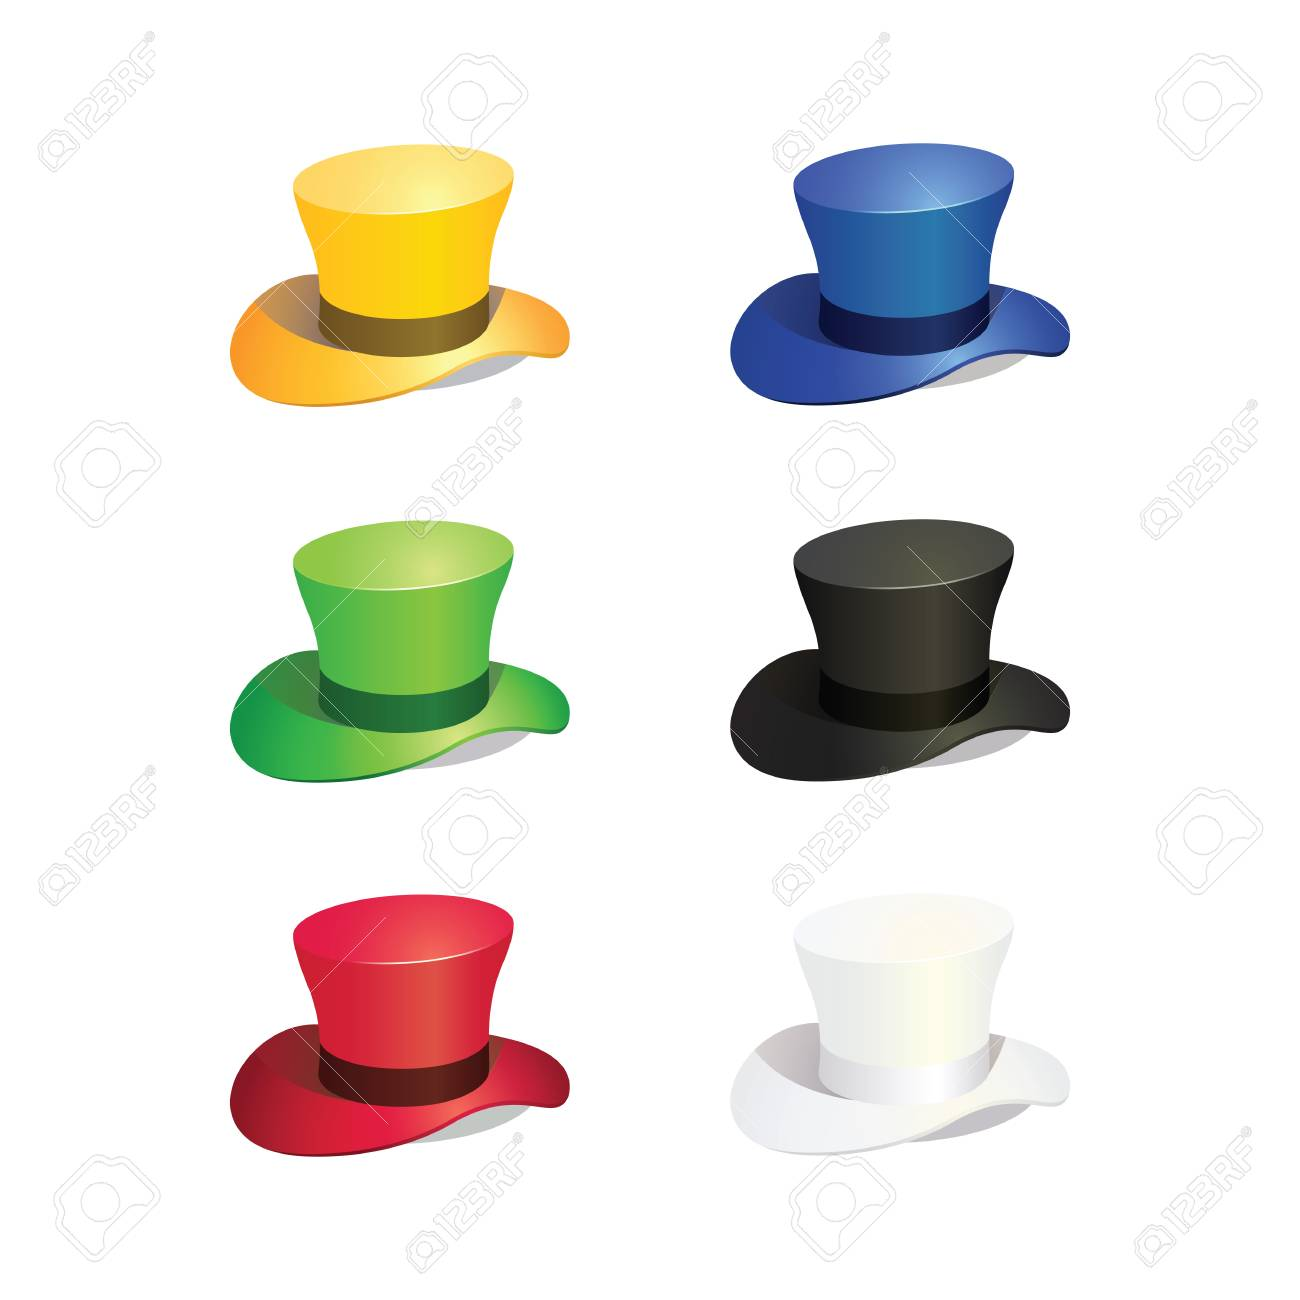 3a3bf8f211c38 Illustration of Six Colors Top Hat Stock Vector - 59714861